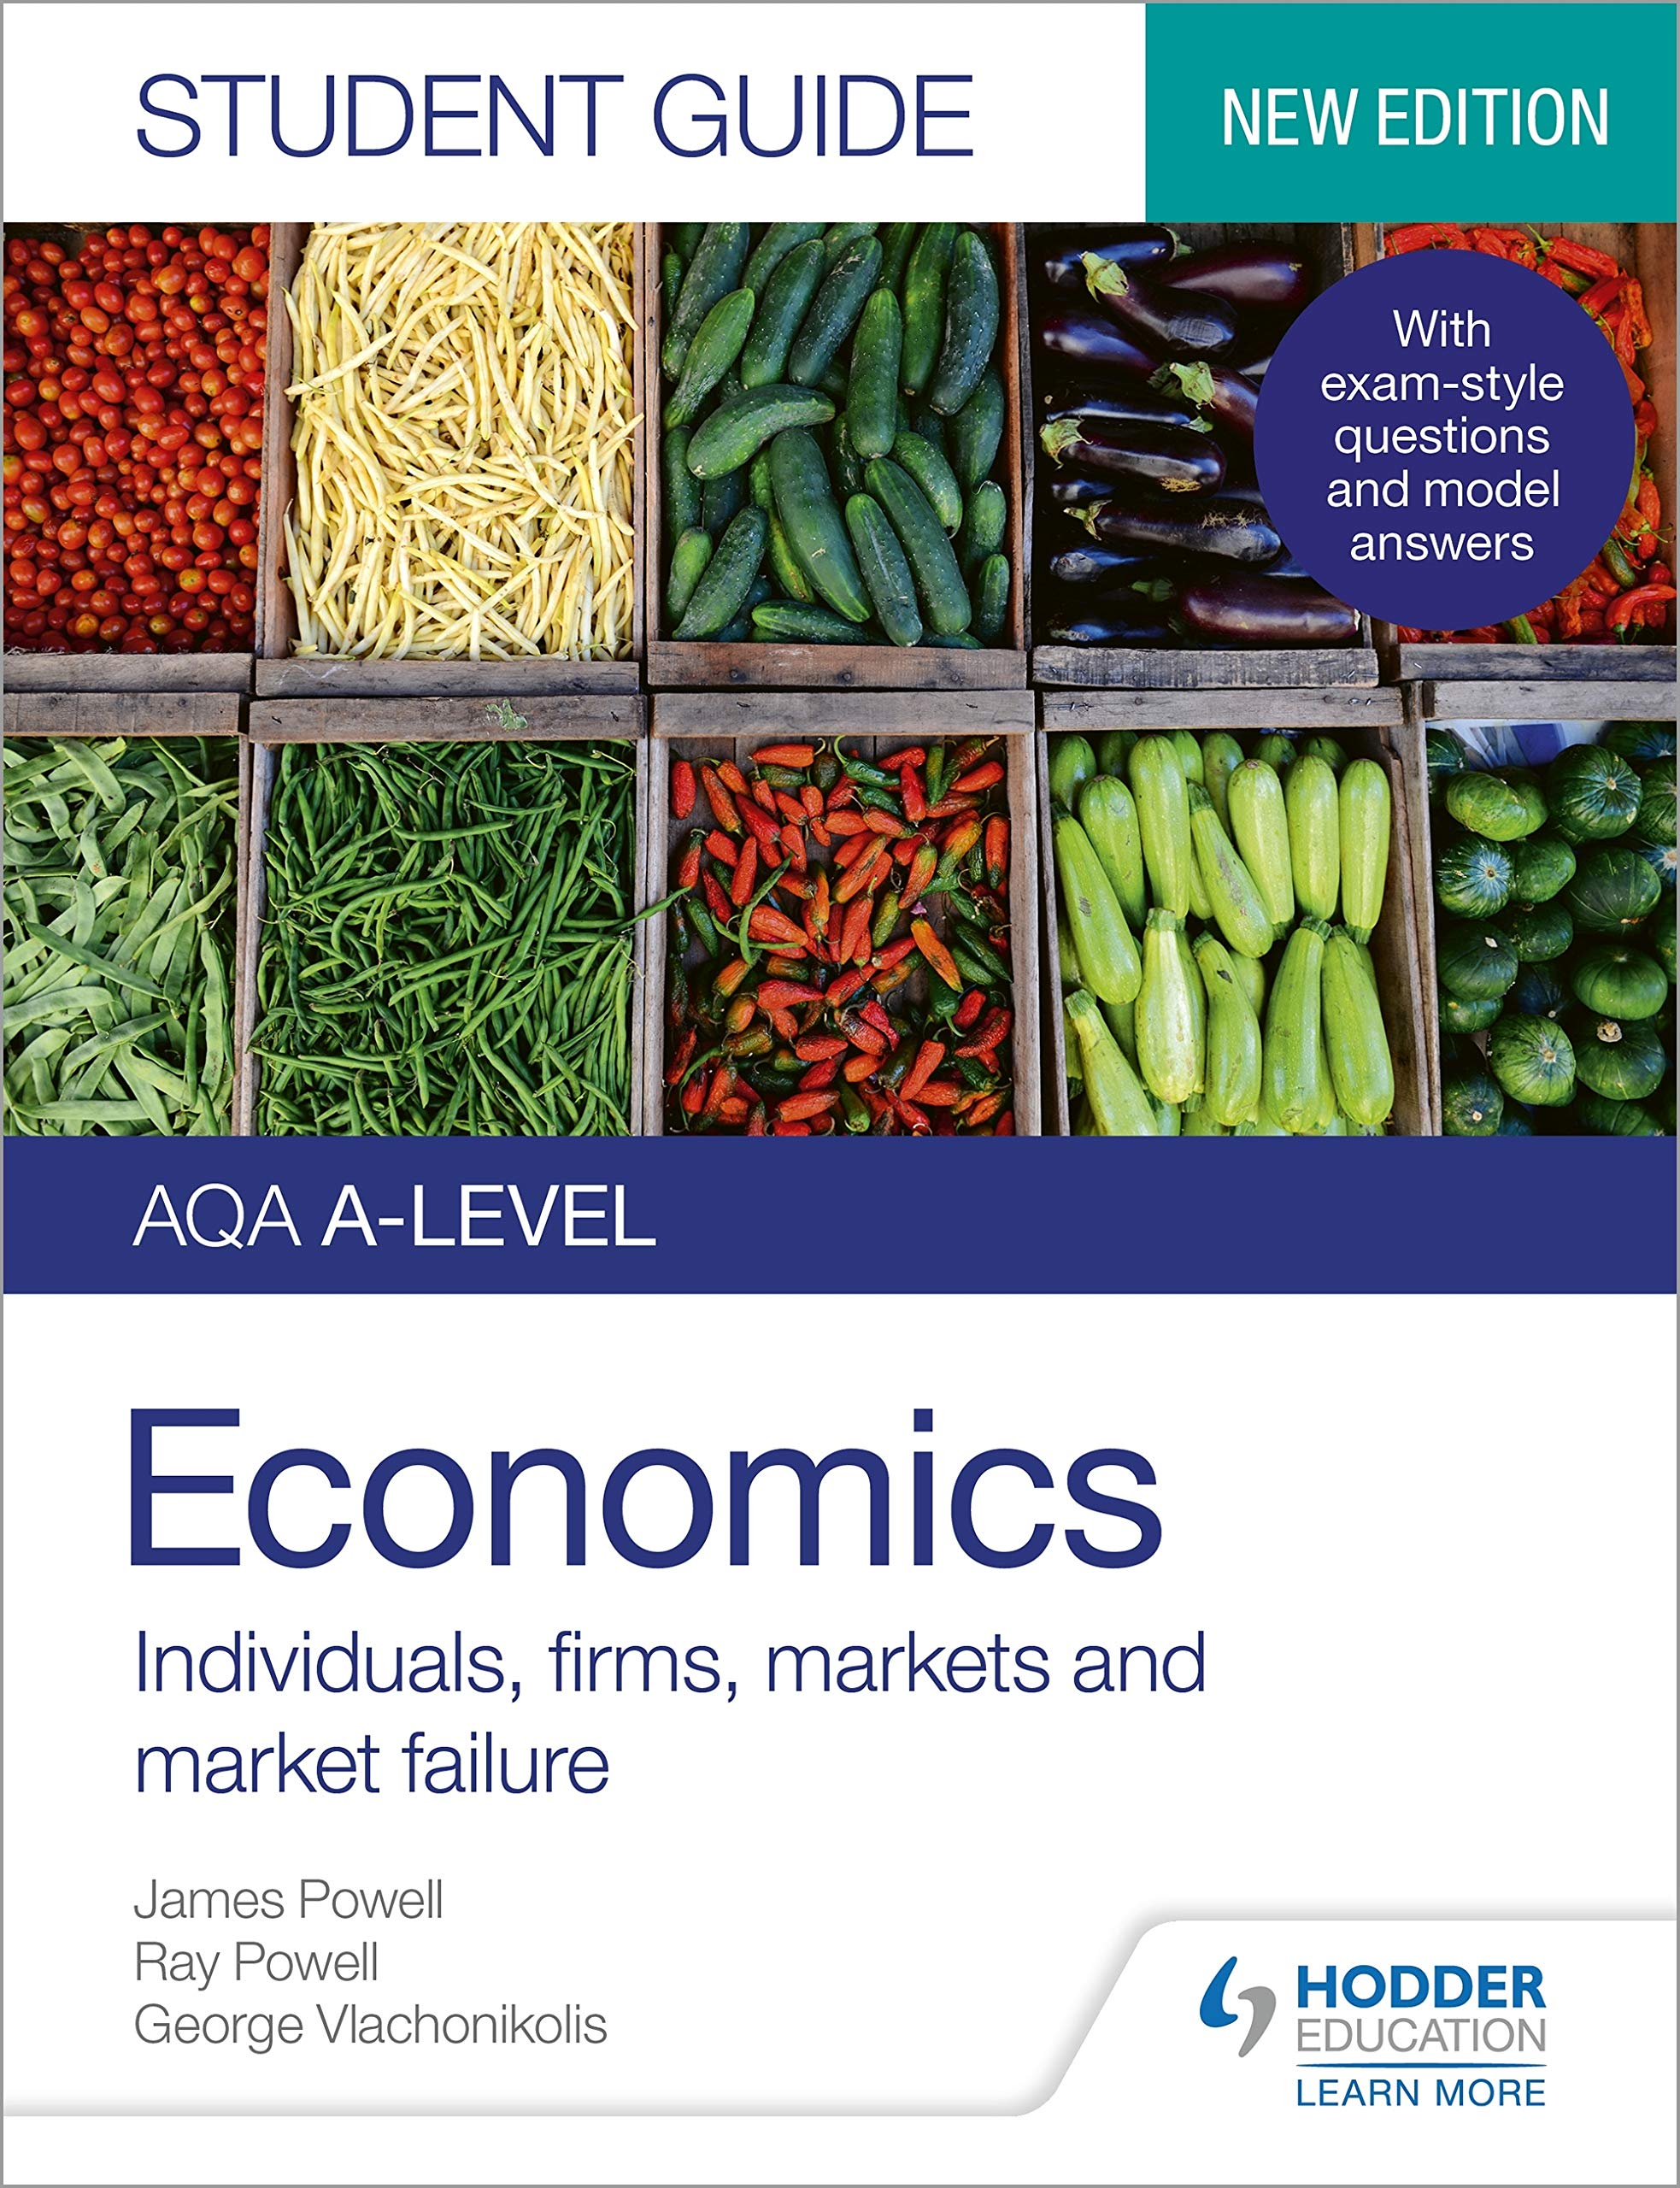 AQA A-level Economics Student Guide 1: Individuals, firms, markets and market failure (Student Guides)